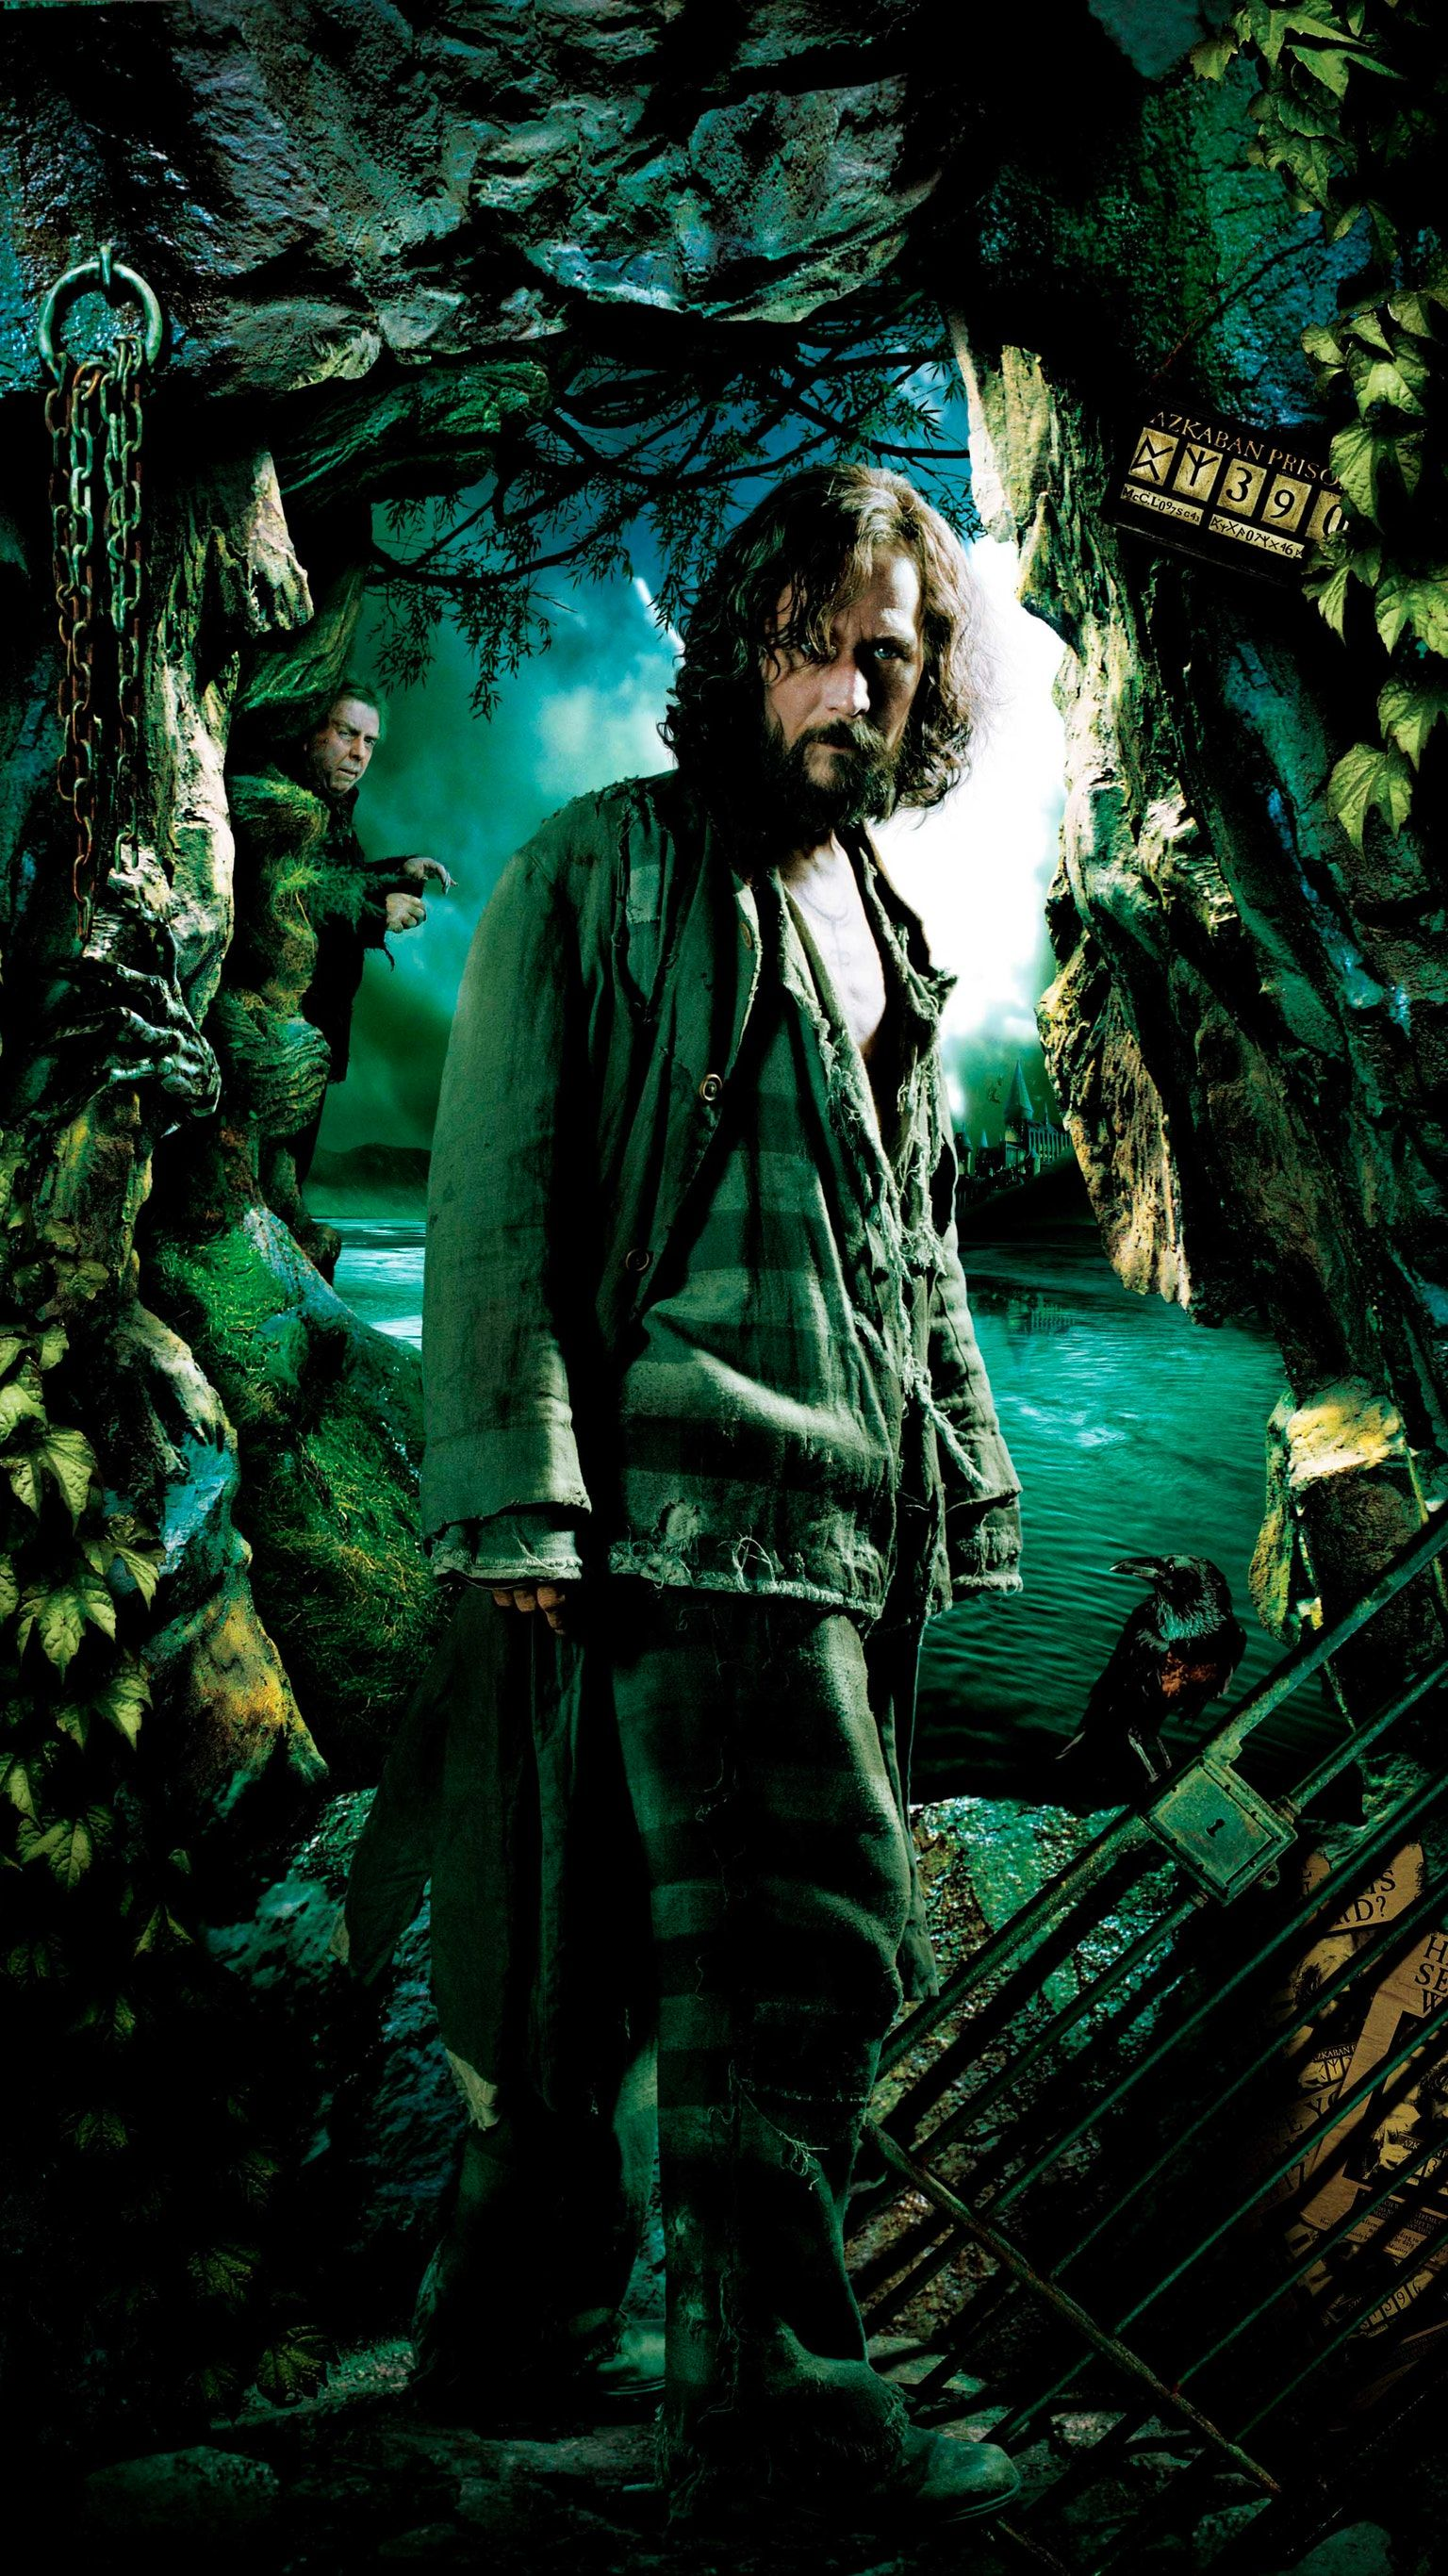 Harry Potter And The Prisoner Of Azkaban 2004 Phone Wallpaper Moviemania Harry Potter Cast Harry Potter Poster Prisoner Of Azkaban